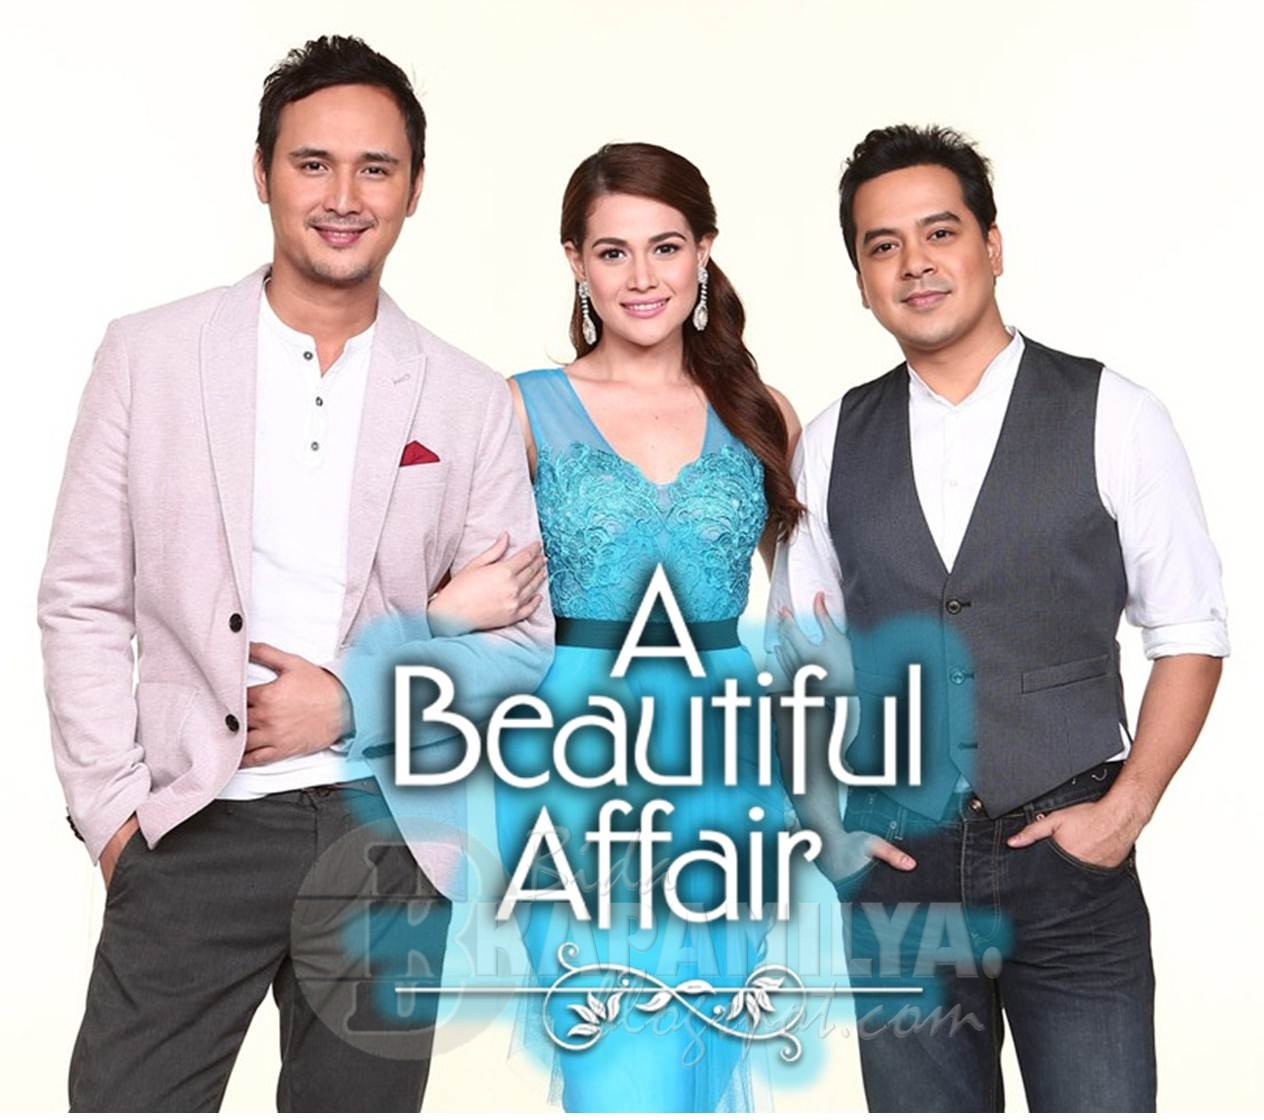 A BEAUTIFUL AFFAIR - OCT. 29, 2012 PART 1/4